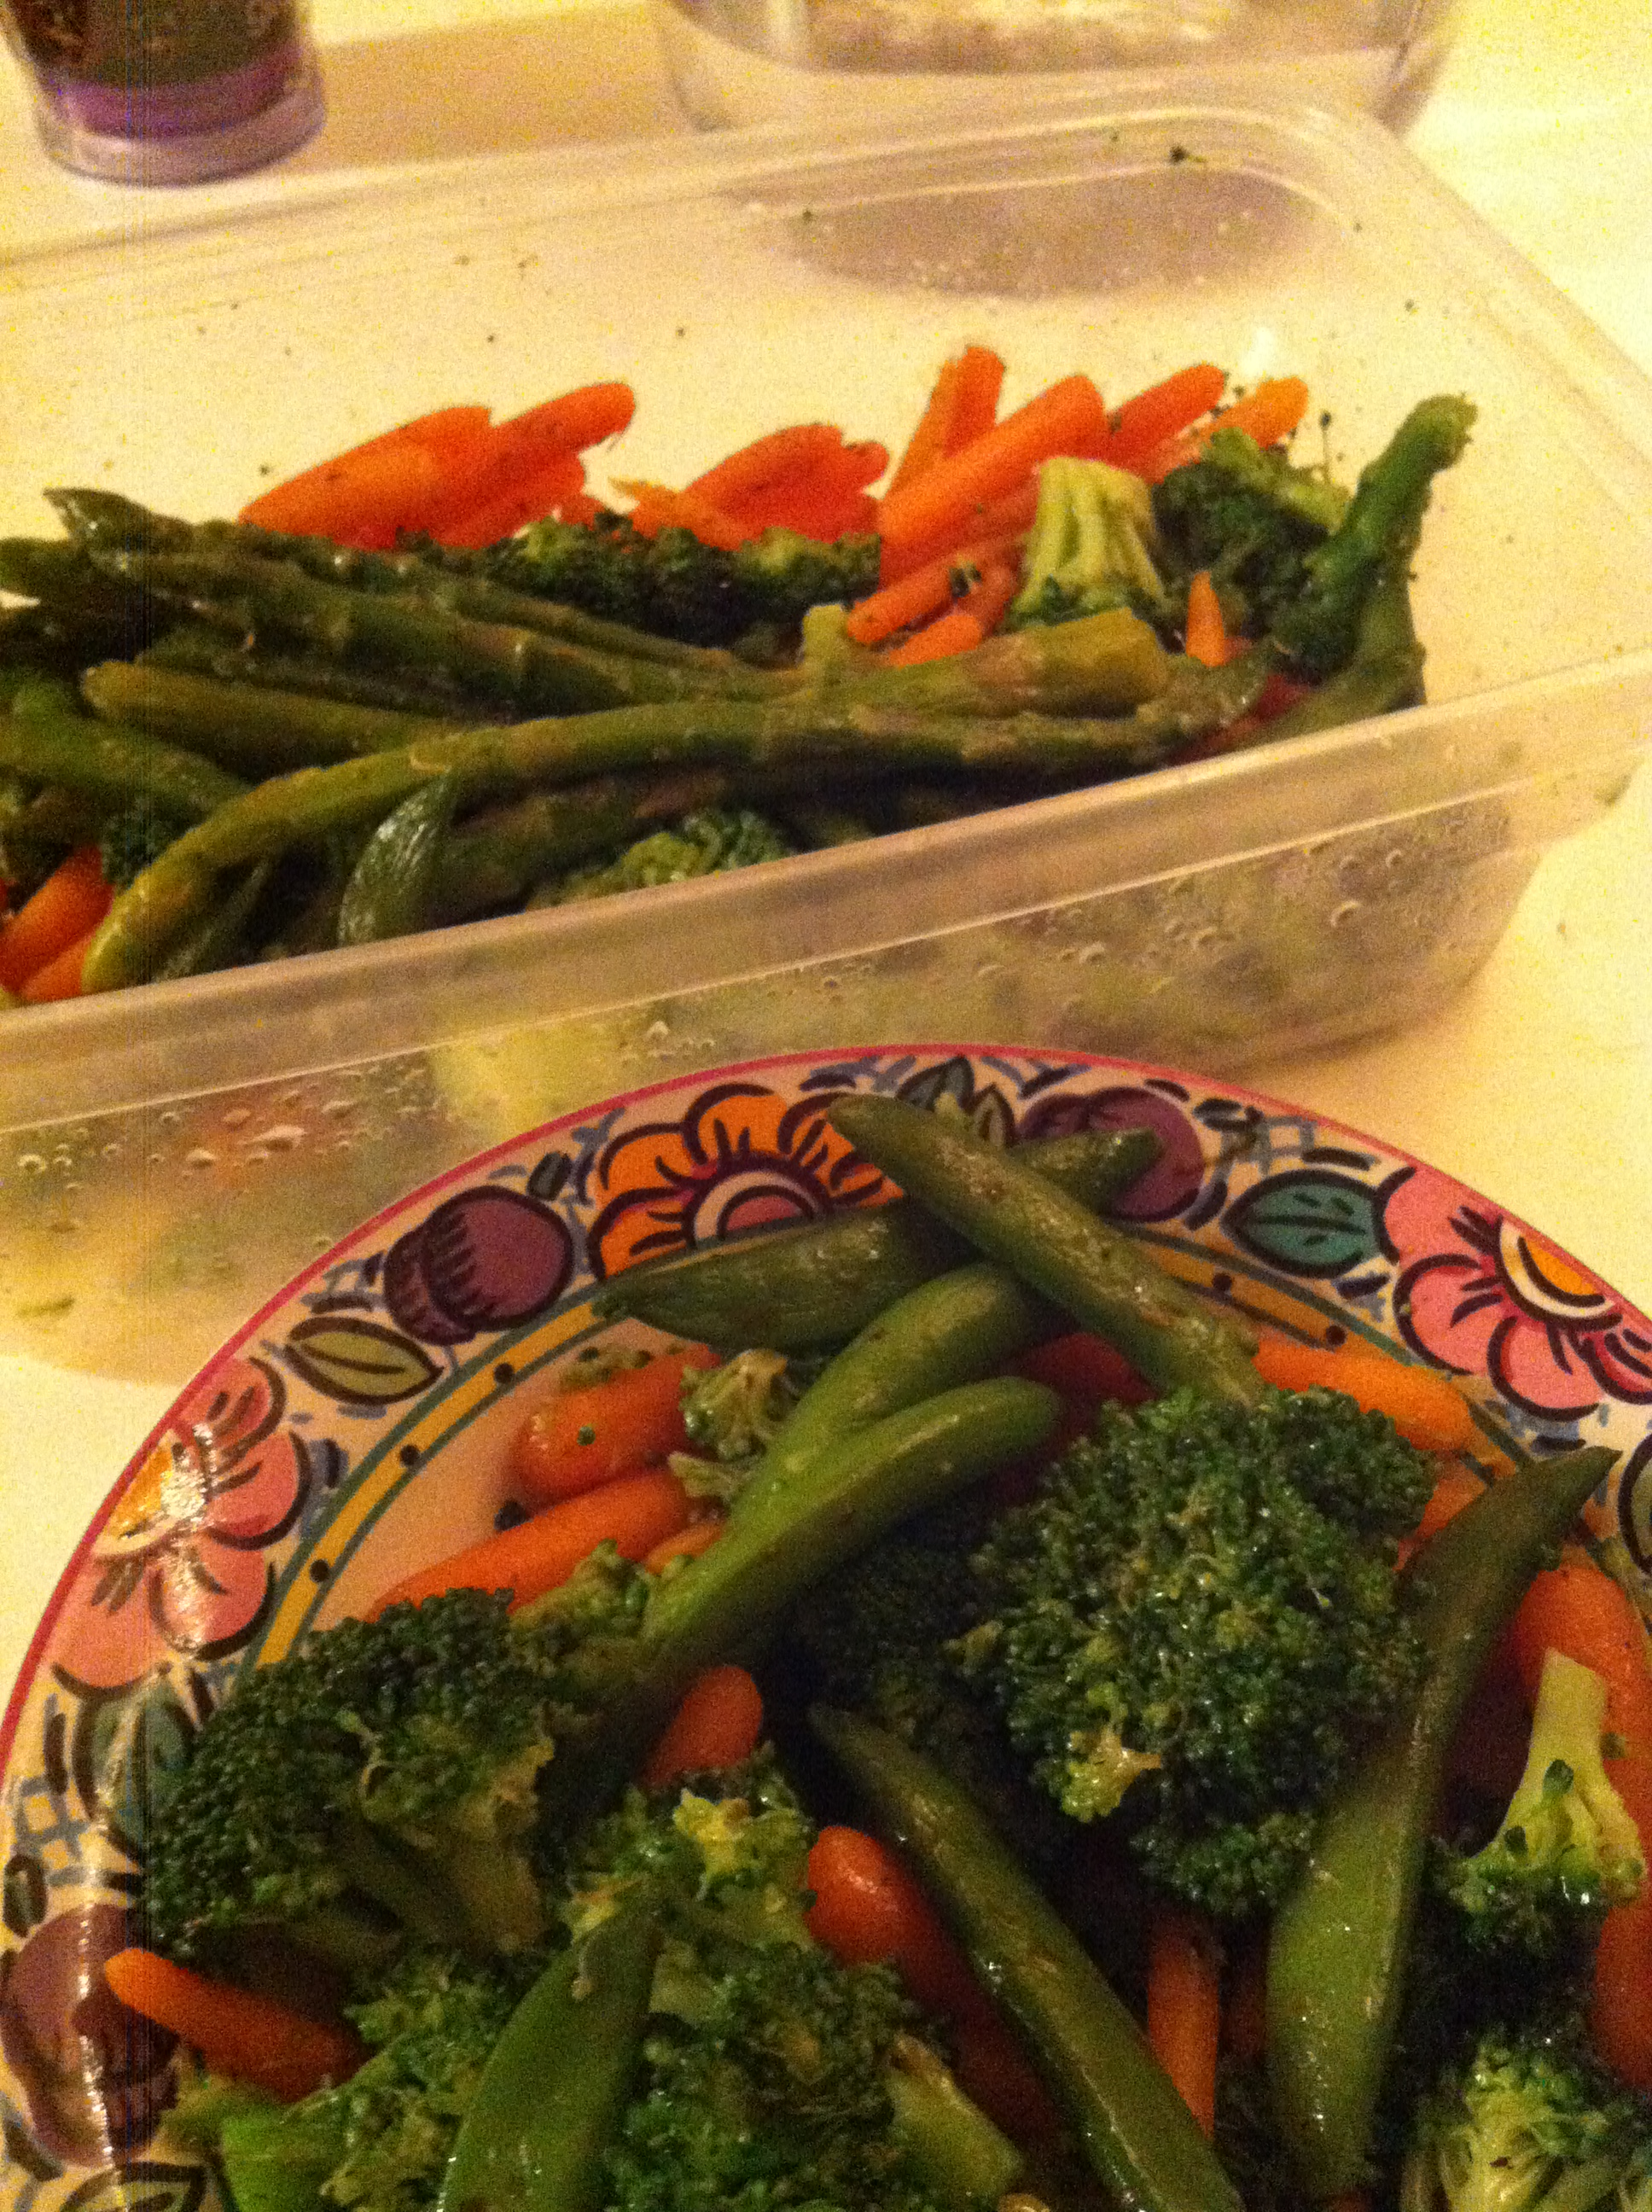 Seasoned Blanched Veggies